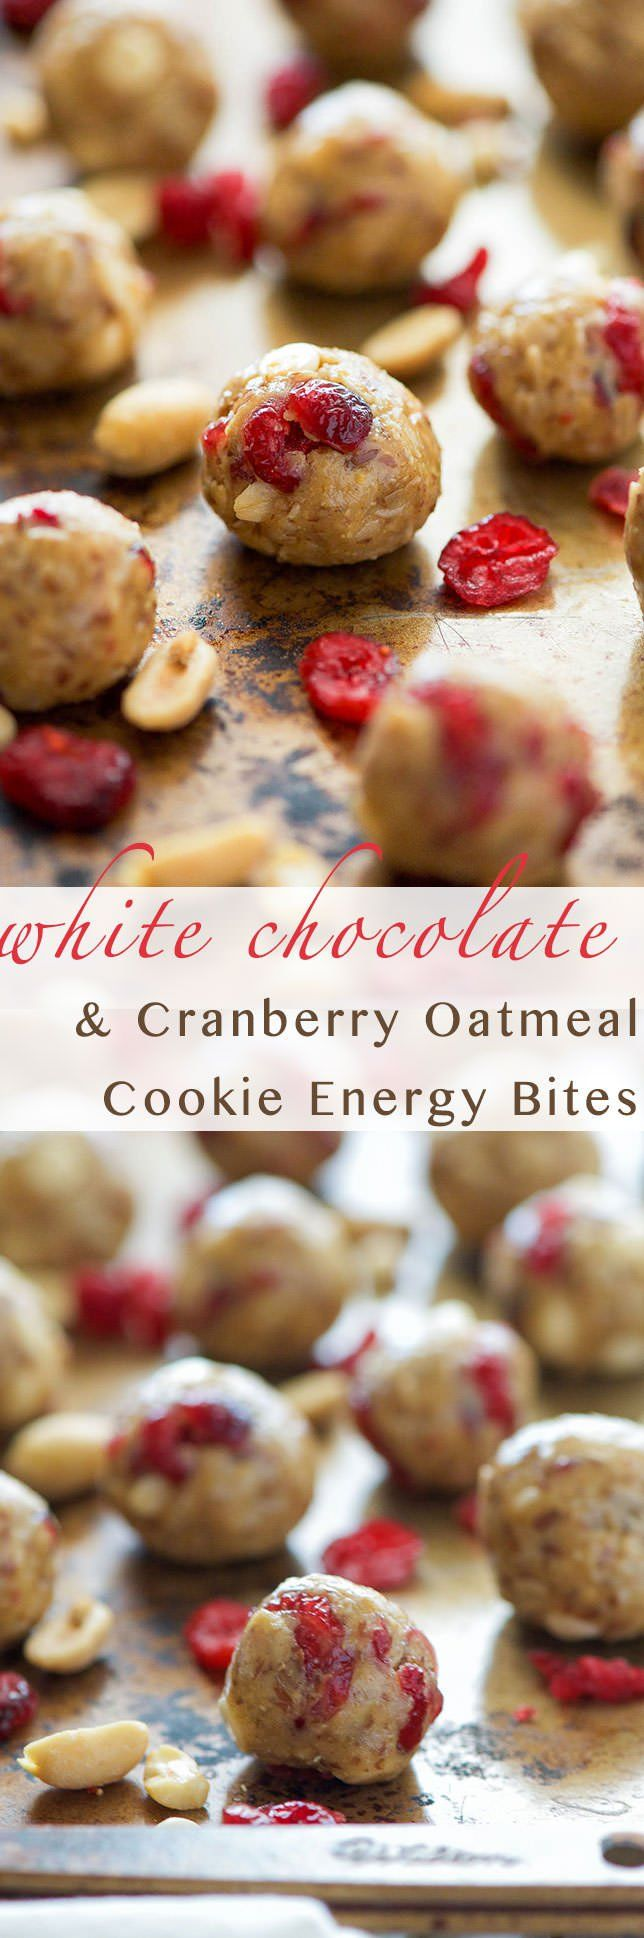 Oatmeal Cookie Energy Bites | Peanut Butter, Gluten Free, Healthy Snack, Chocolate, Honey, No Bake, Healthy, Protein, Easy,